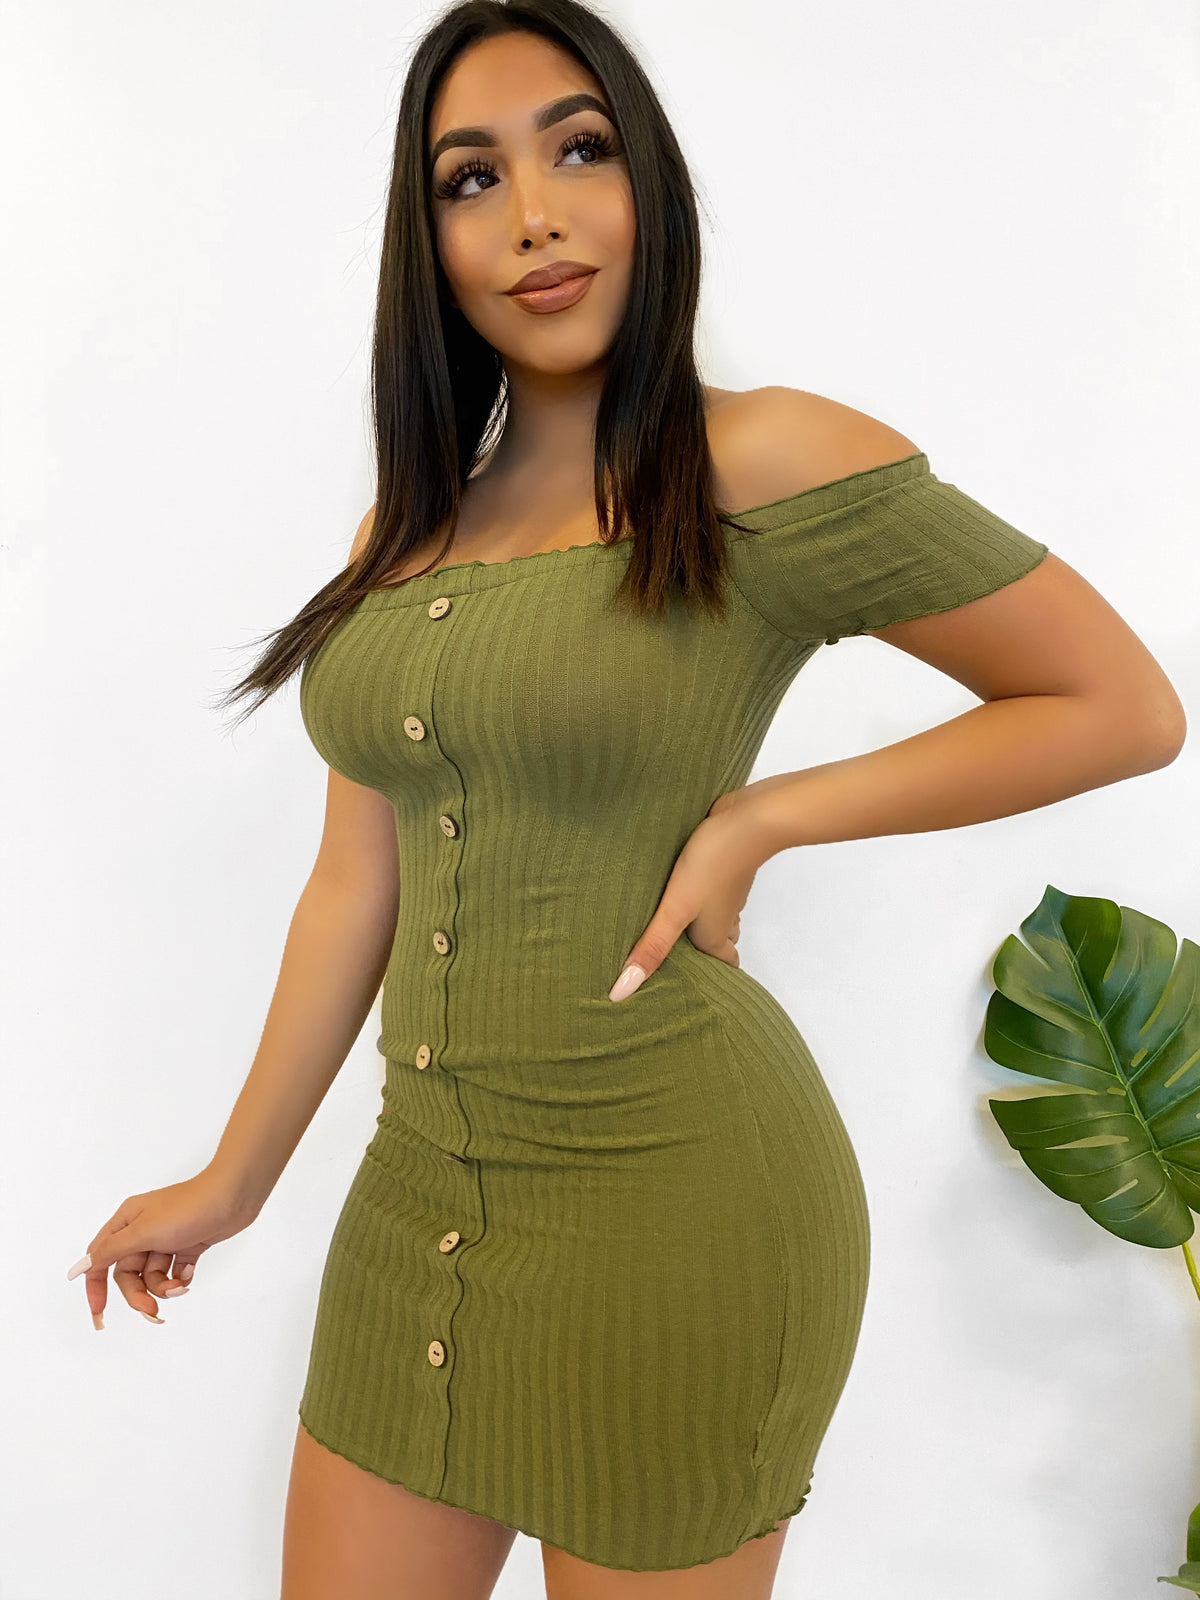 ribbed off the shoulder dress, olive mini dress, faux buttons, mid thigh length